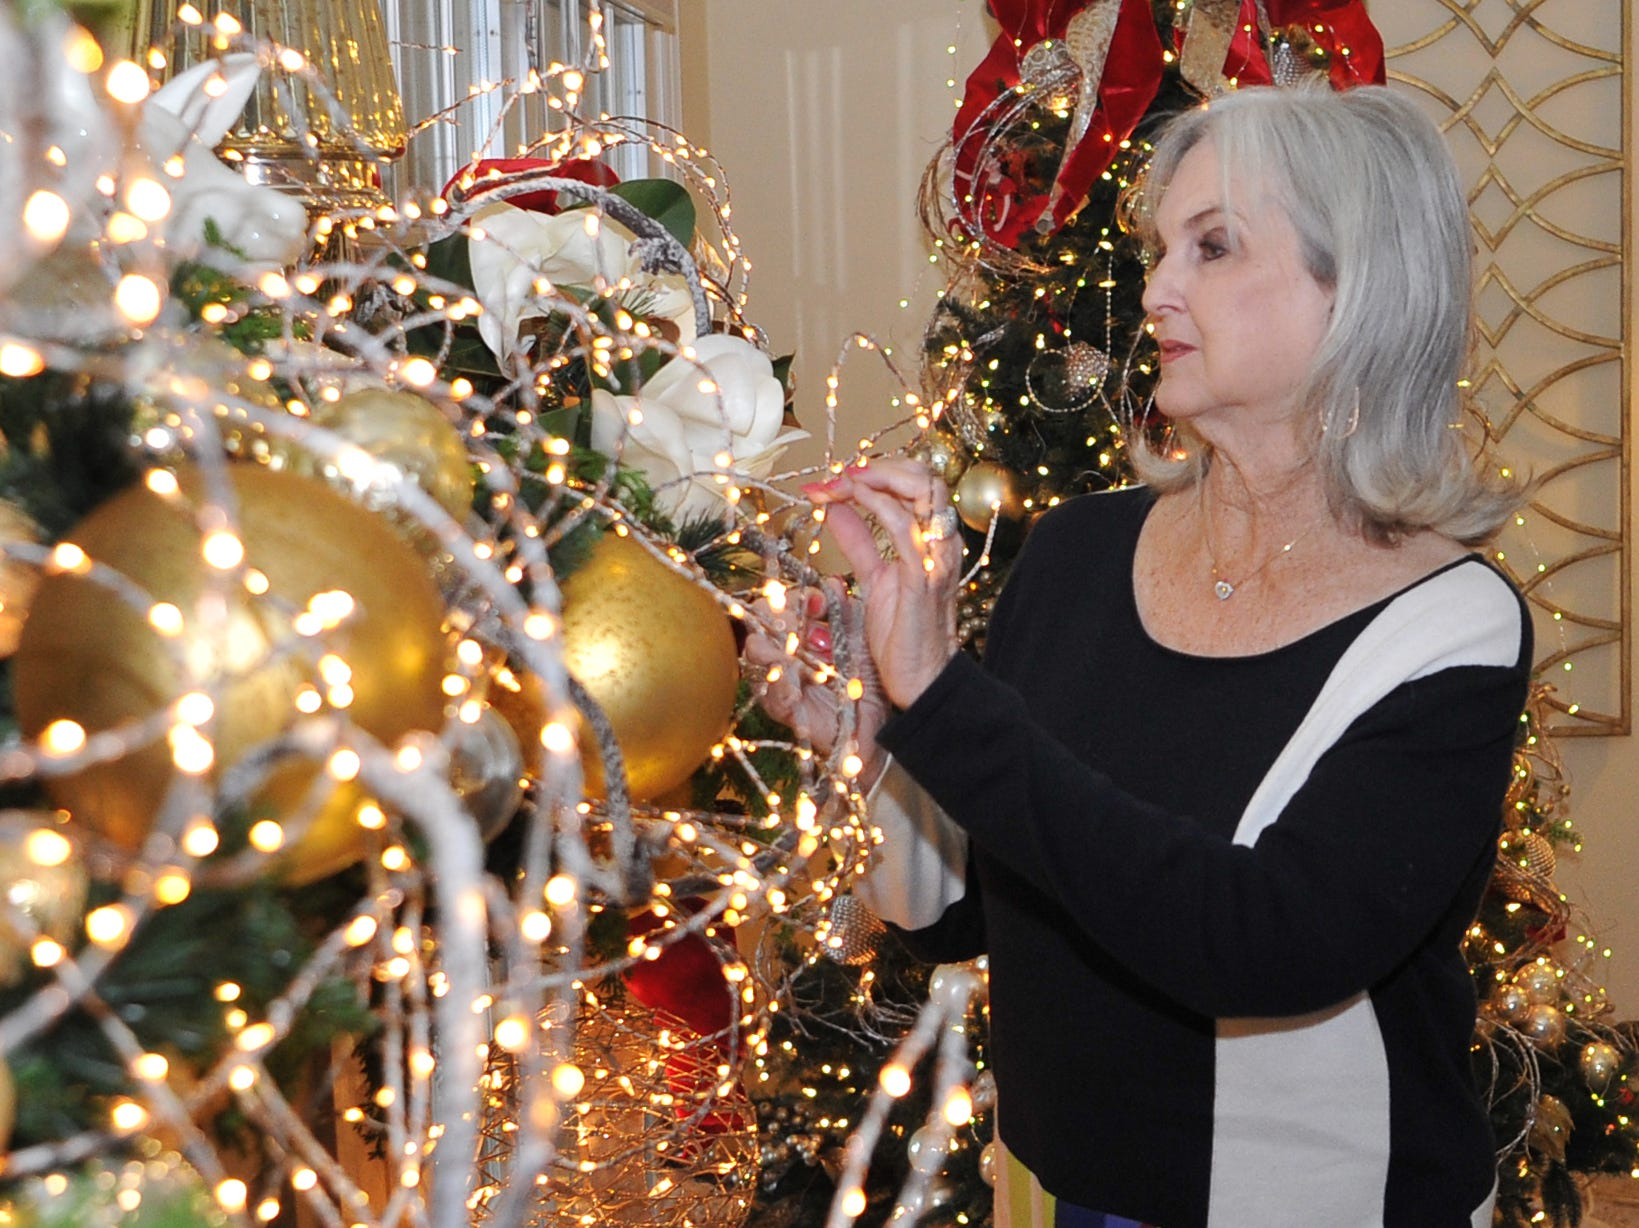 Mary Ann Recht looks at some of her living area Christmas decorations. Recht's home will be part of this year's annual Christmas Tour of Homes.